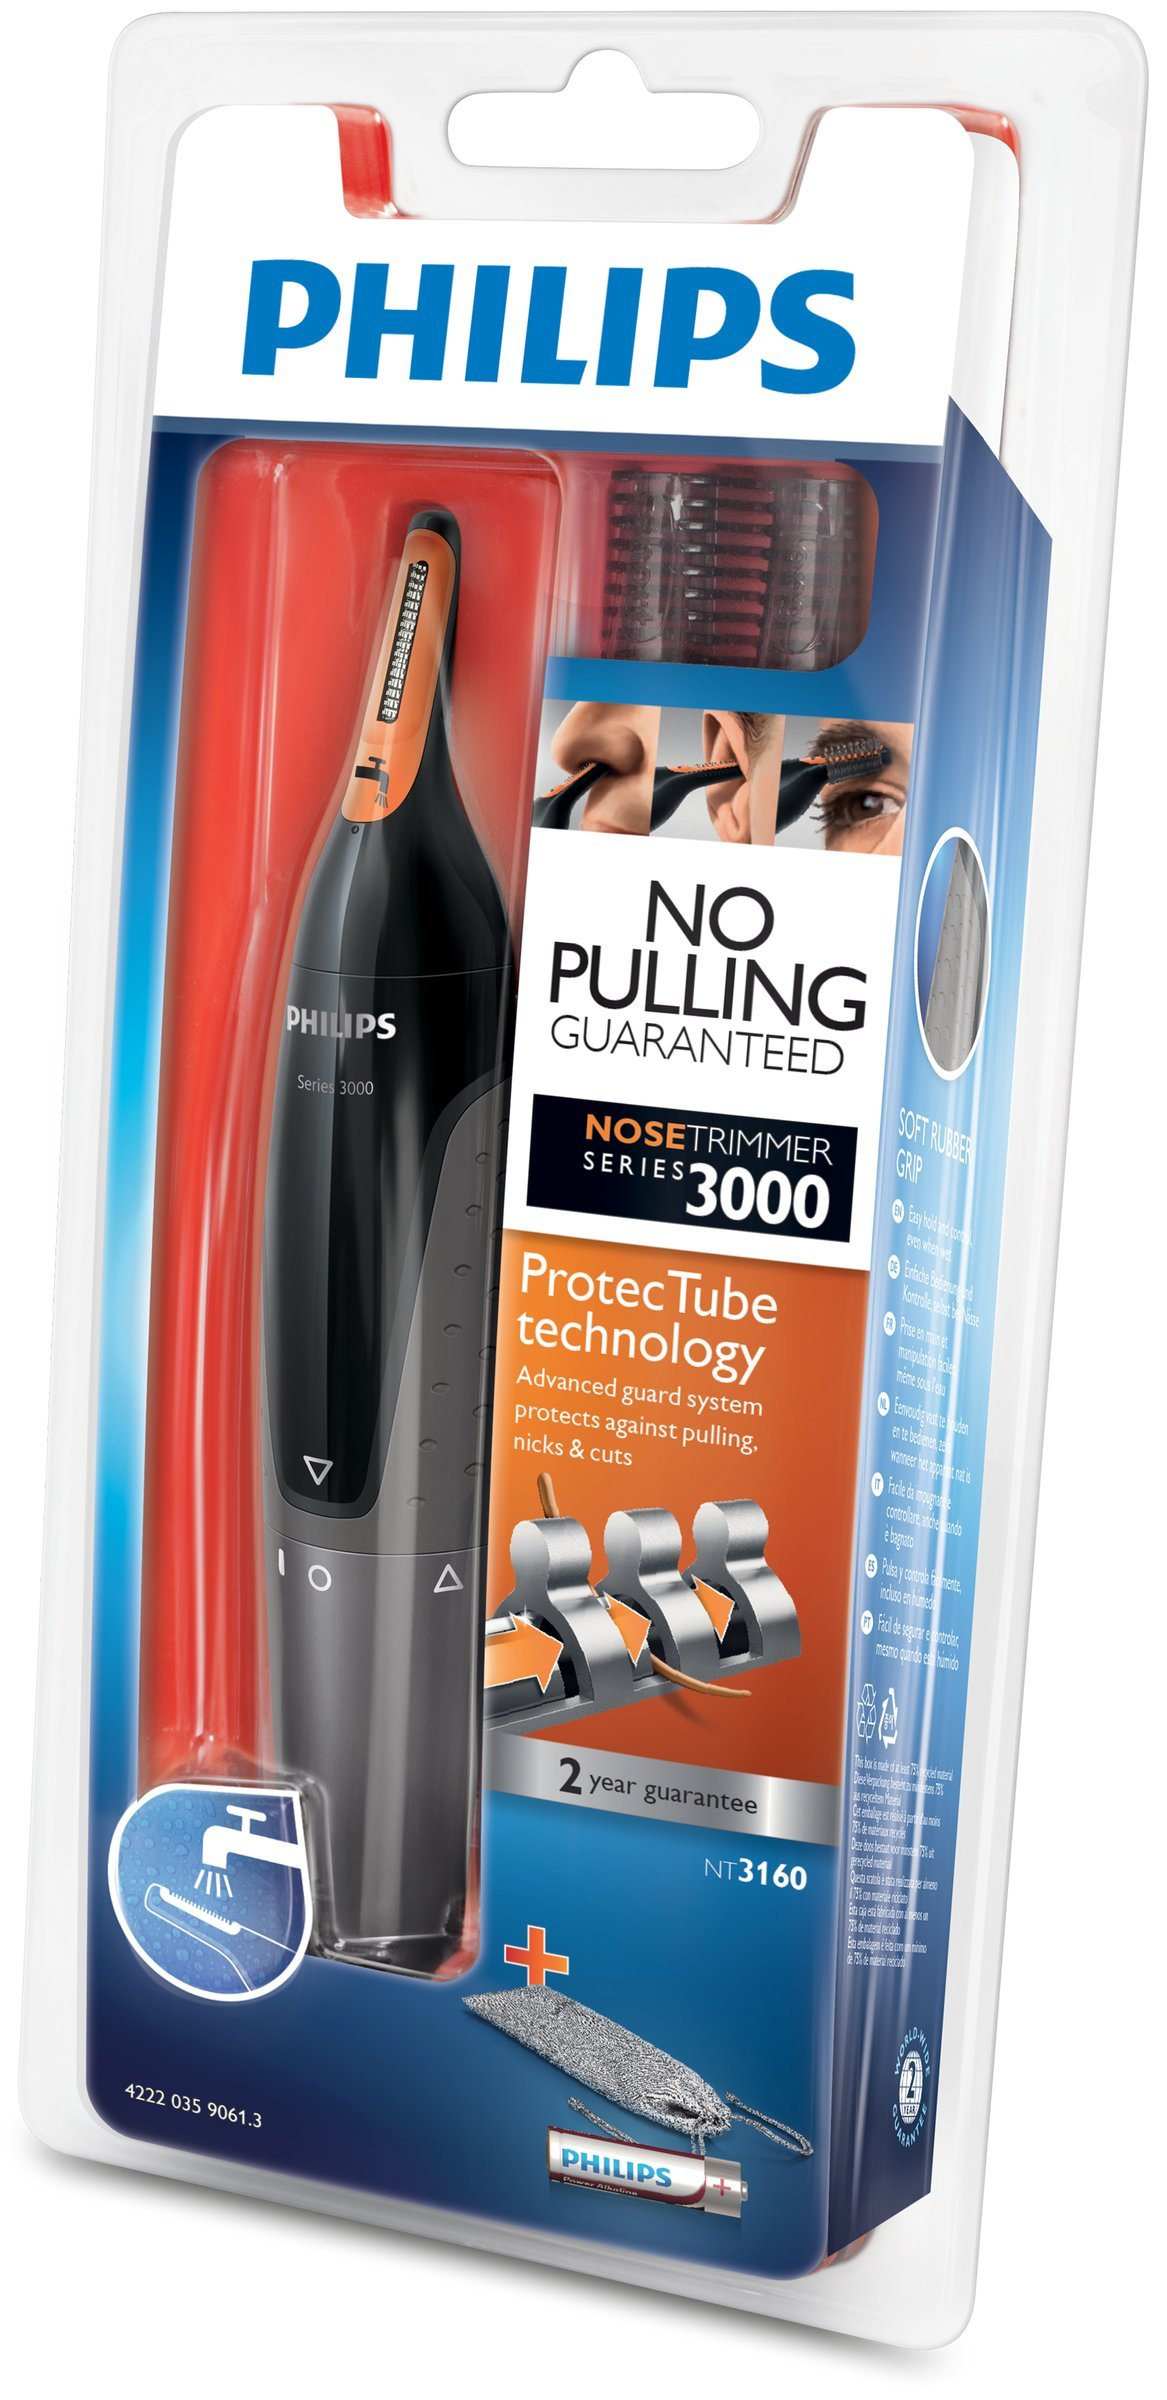 Philips Series 3000 Ear, Eyebrow & Nose Trimmer with 2 Eyebrow Combs & Pouch, Black & Grey, NT3160/10 2